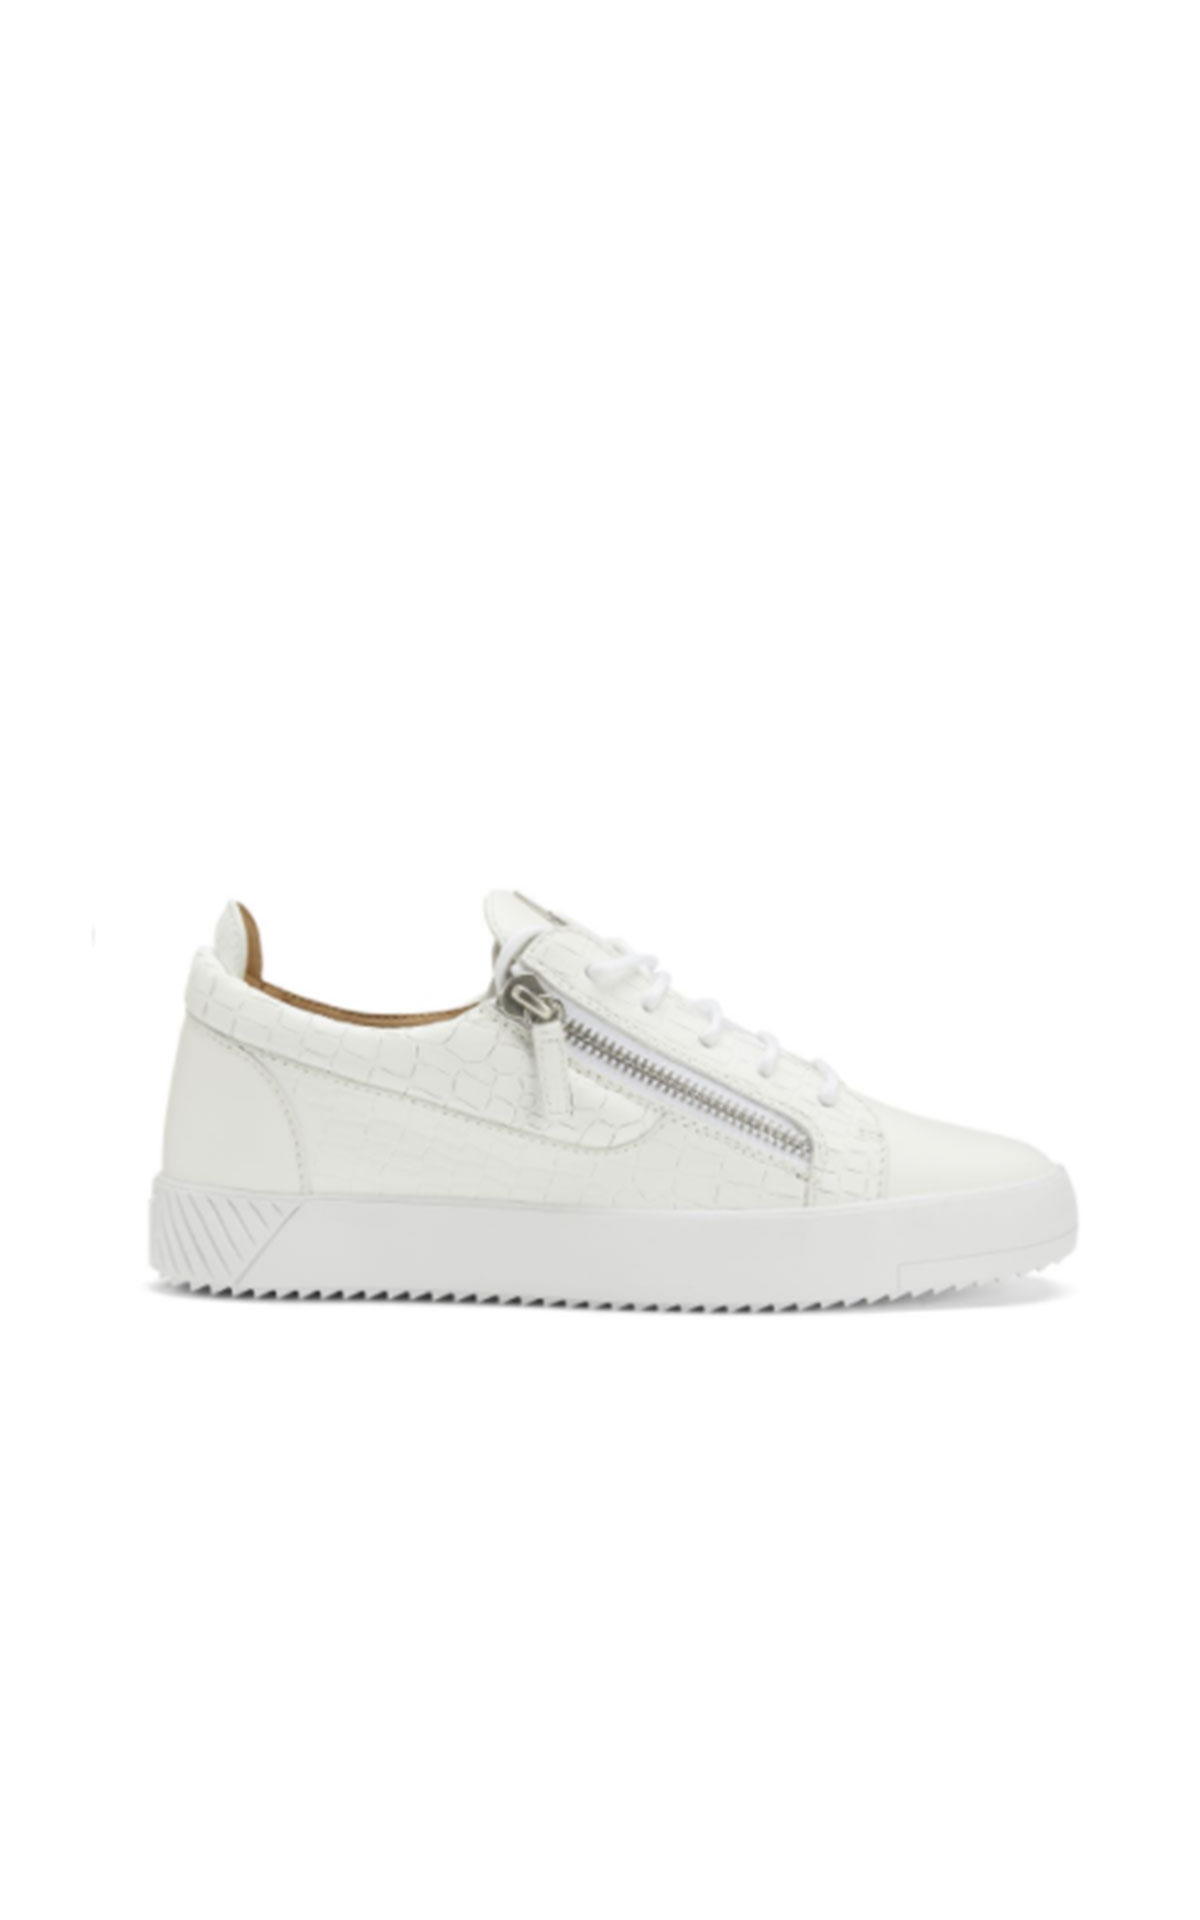 Giuseppe Zanotti Men's G Flash sneaker from Bicester Village